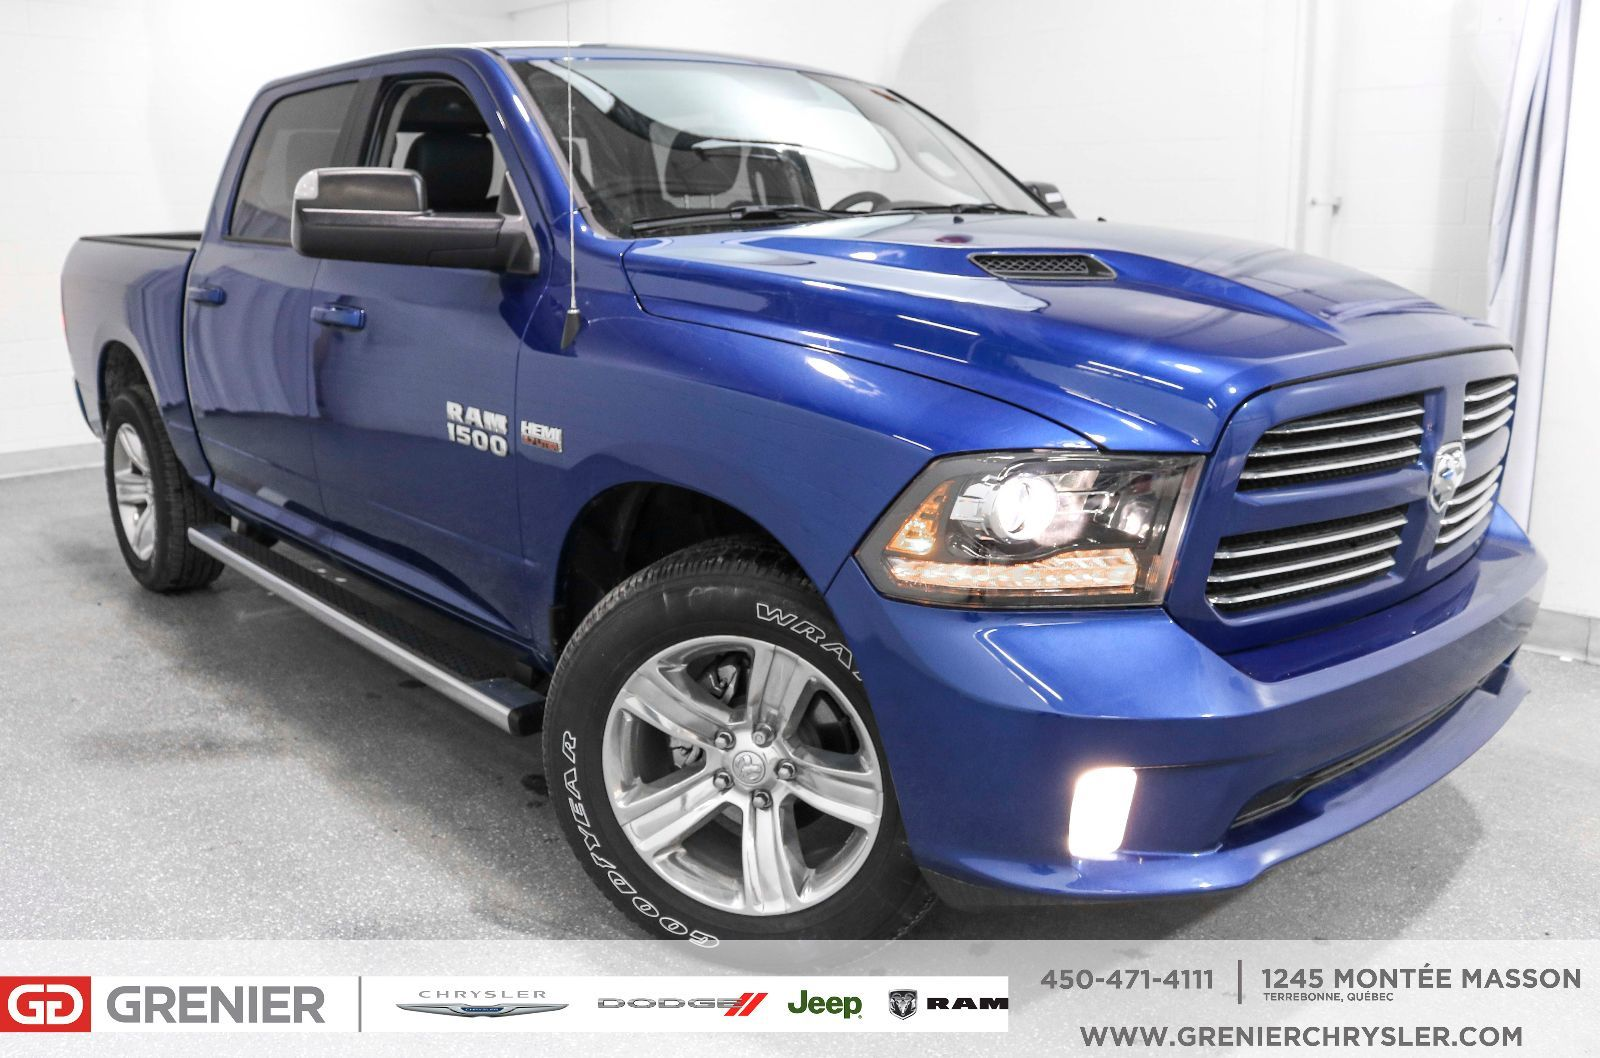 ram 1500 bluetooth cam ra de recul marchepieds 2017 bleu neuf 41995 0 grenier chrysler. Black Bedroom Furniture Sets. Home Design Ideas